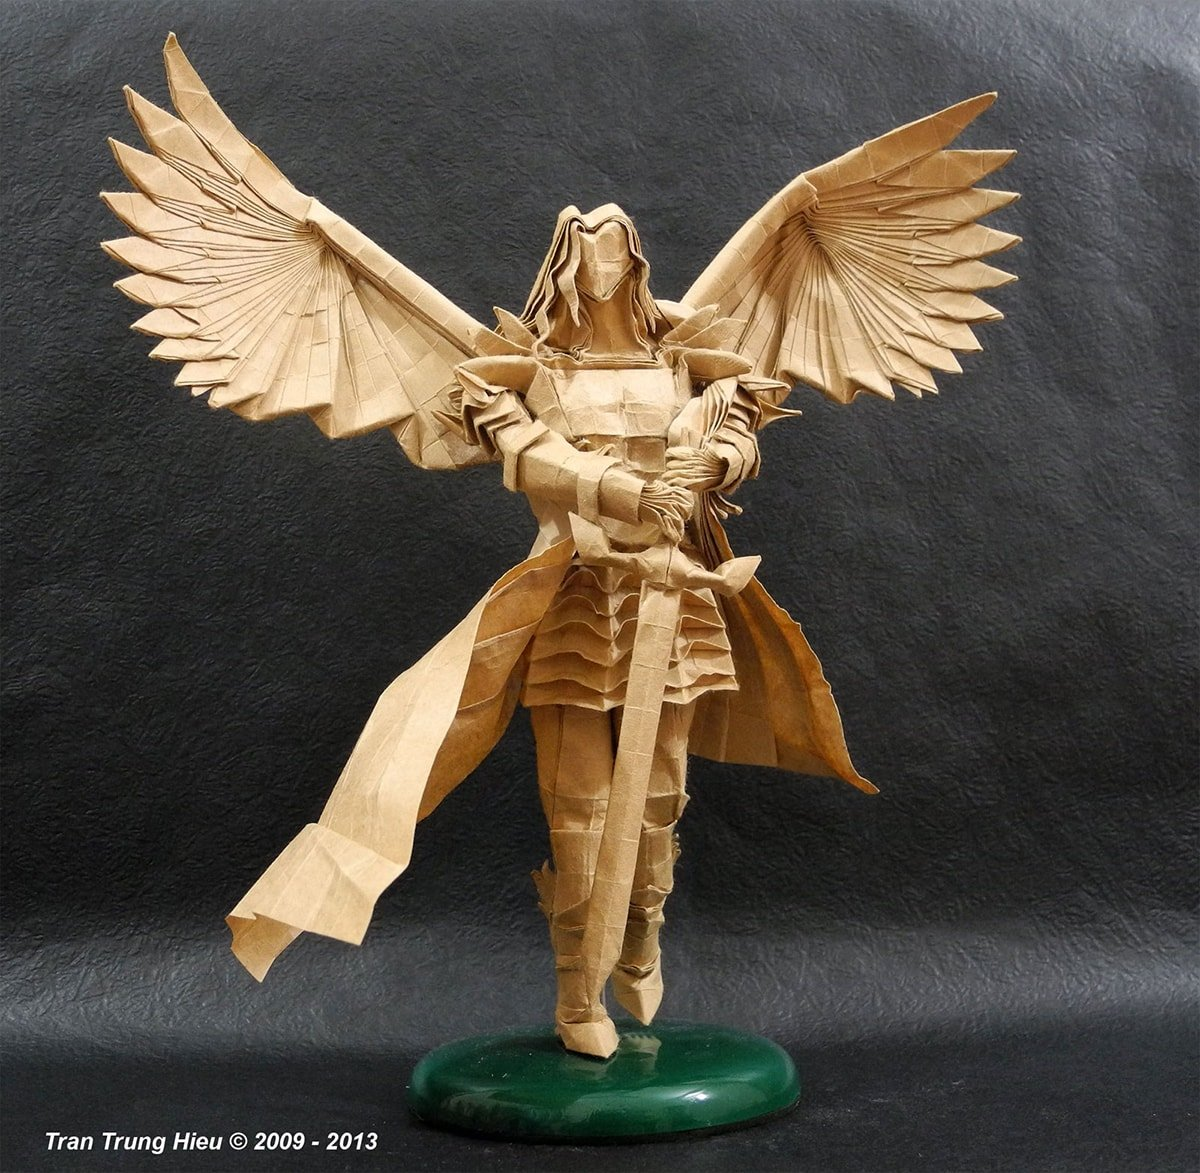 Archangel St. Michael by Tran Trung Hieu